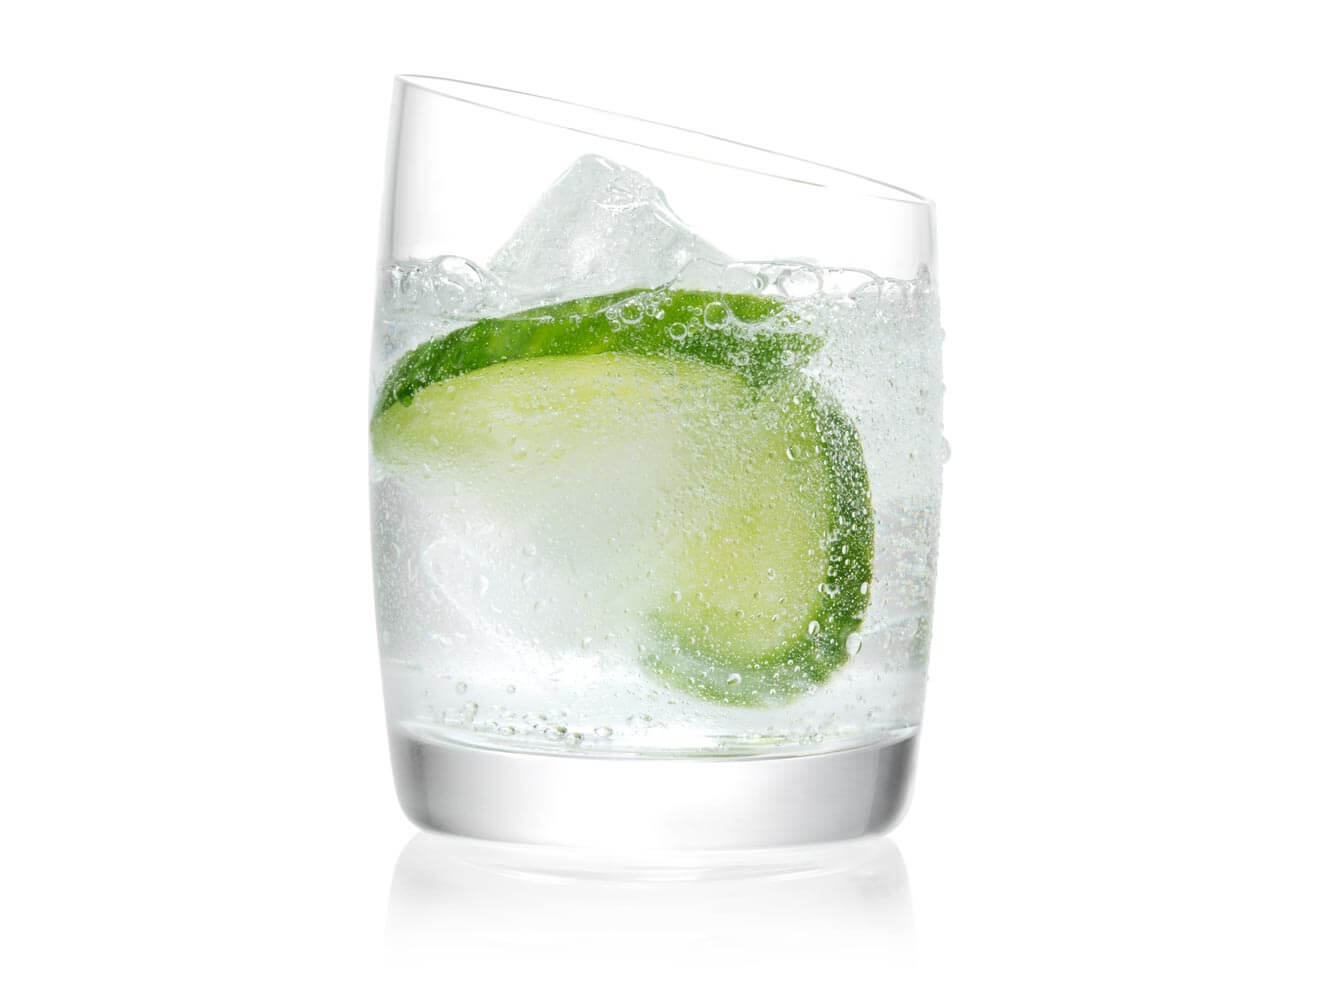 SVEDKA Q Cumber cocktail made with SVEDKA Cucumber Lime, featured brands